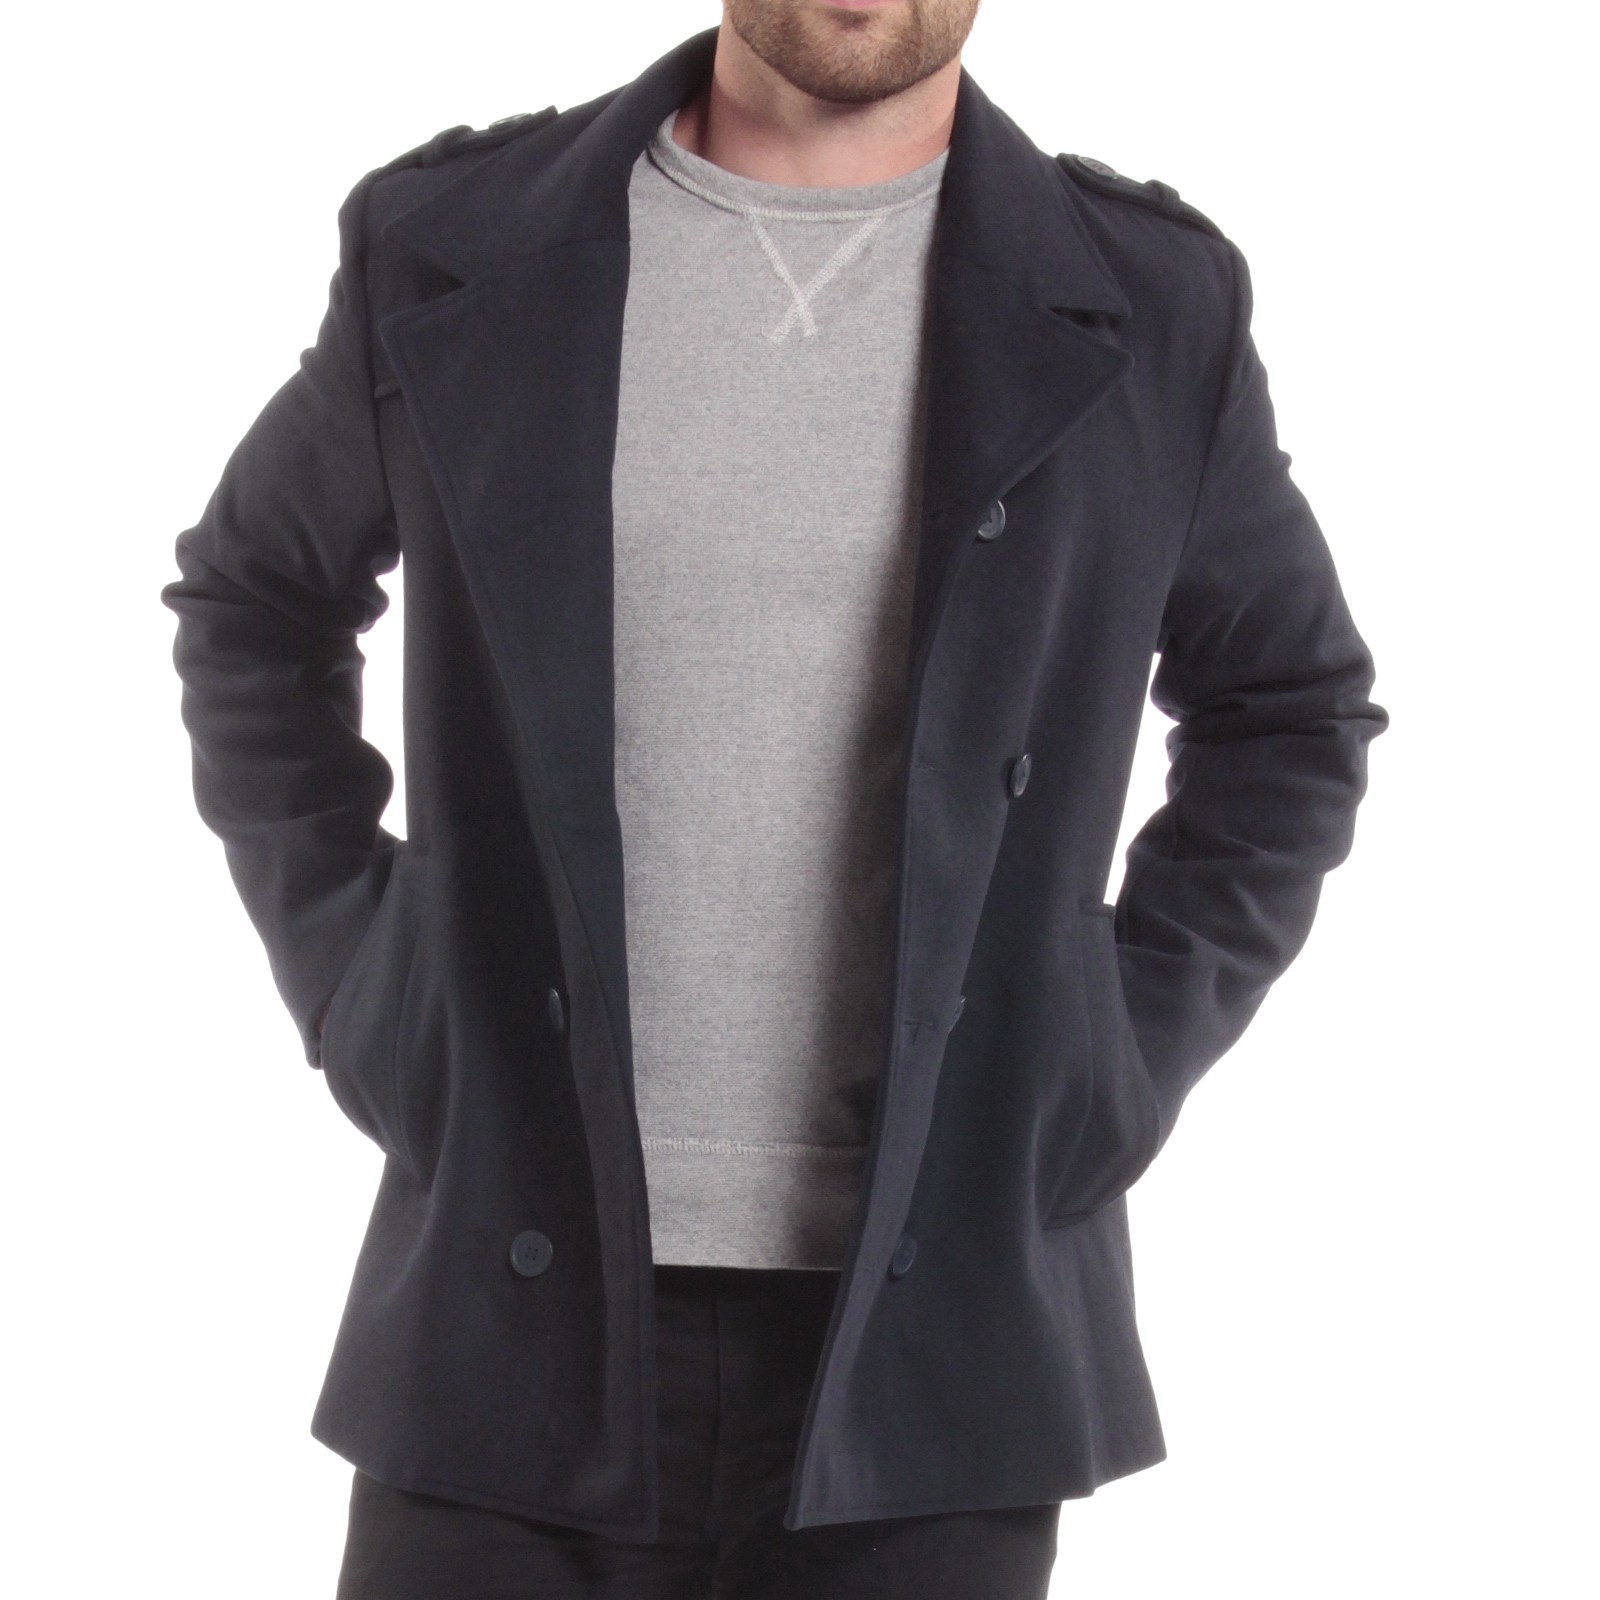 Alpine Swiss Jake Mens Pea Coat Wool Blend Double Breasted Dress ...